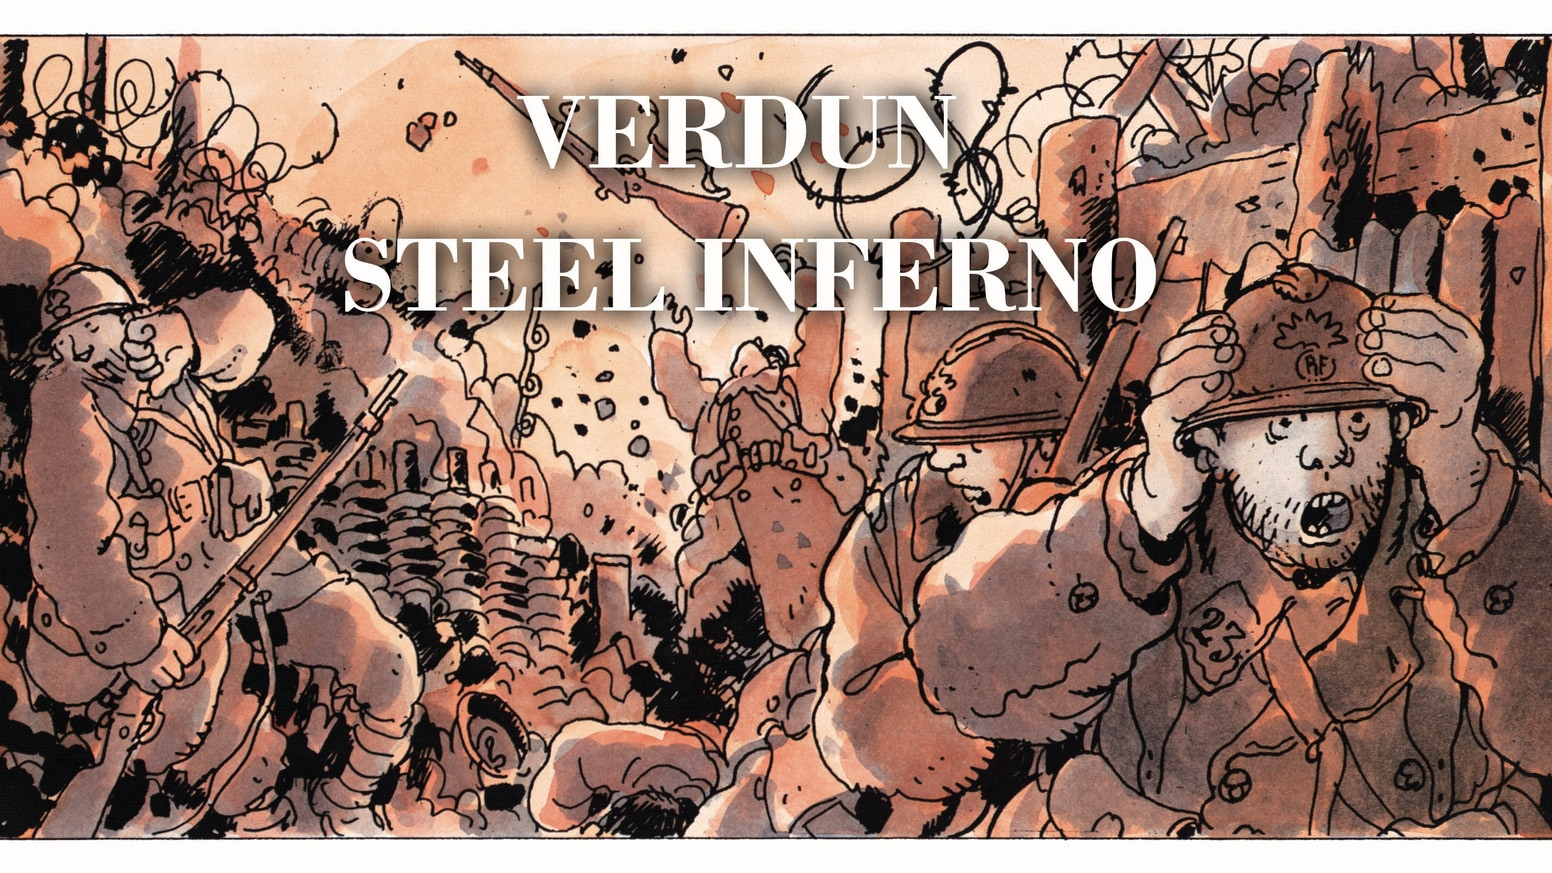 VERDUN: STEEL INFERNO: A fast playing card driven game on the epic battle of 1916. Illustrated by the famous WW1 cartoonist TARDI.For LATE PLEDGES (paypal at this stage) email us: fellowshipofsimulations@gmail.com